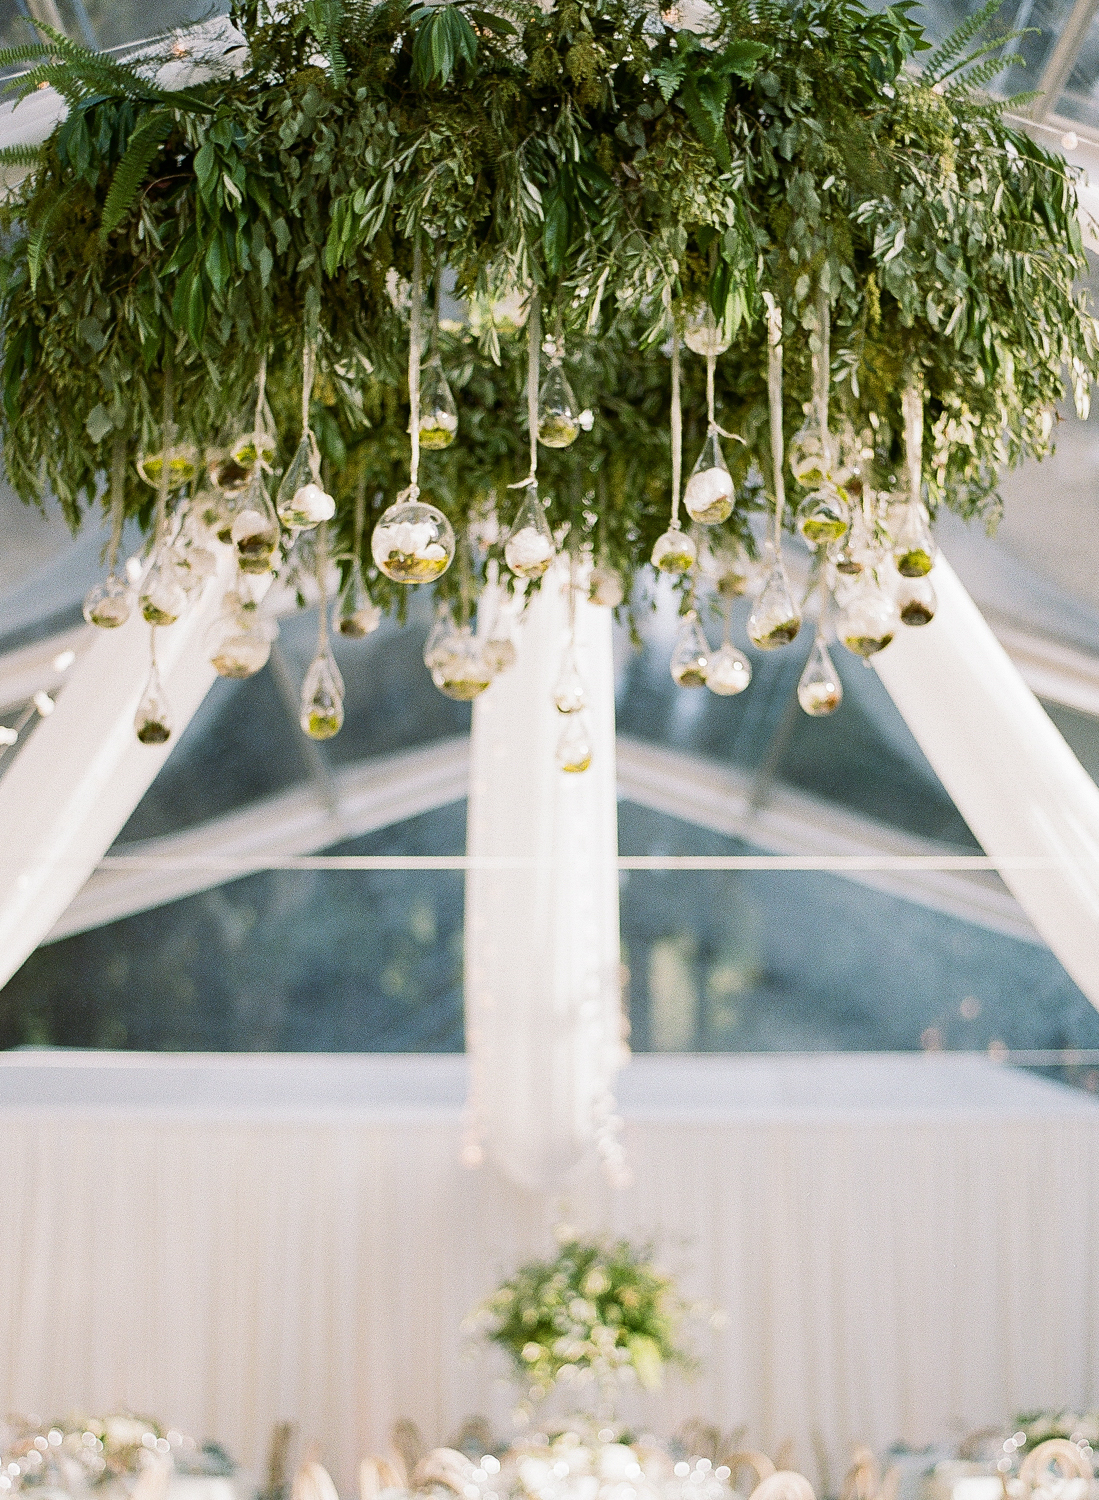 Tiny glass terrariums hang from a leafy wreath at the center of the clear paneled reception tent; Sylvie Gil Photography